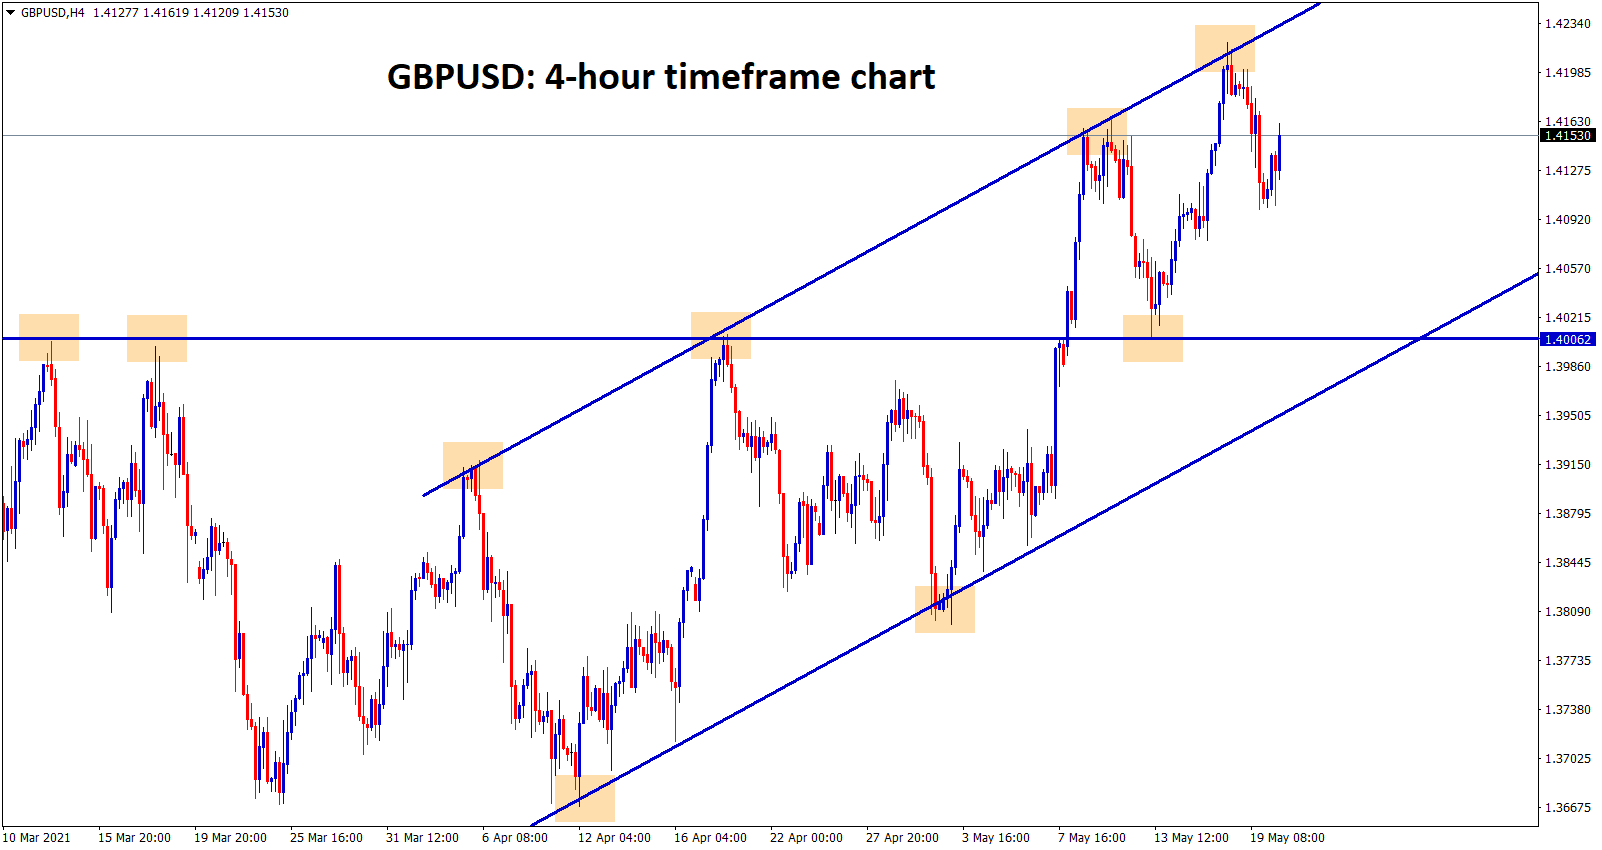 GBPUSD ranging at the higher high zone